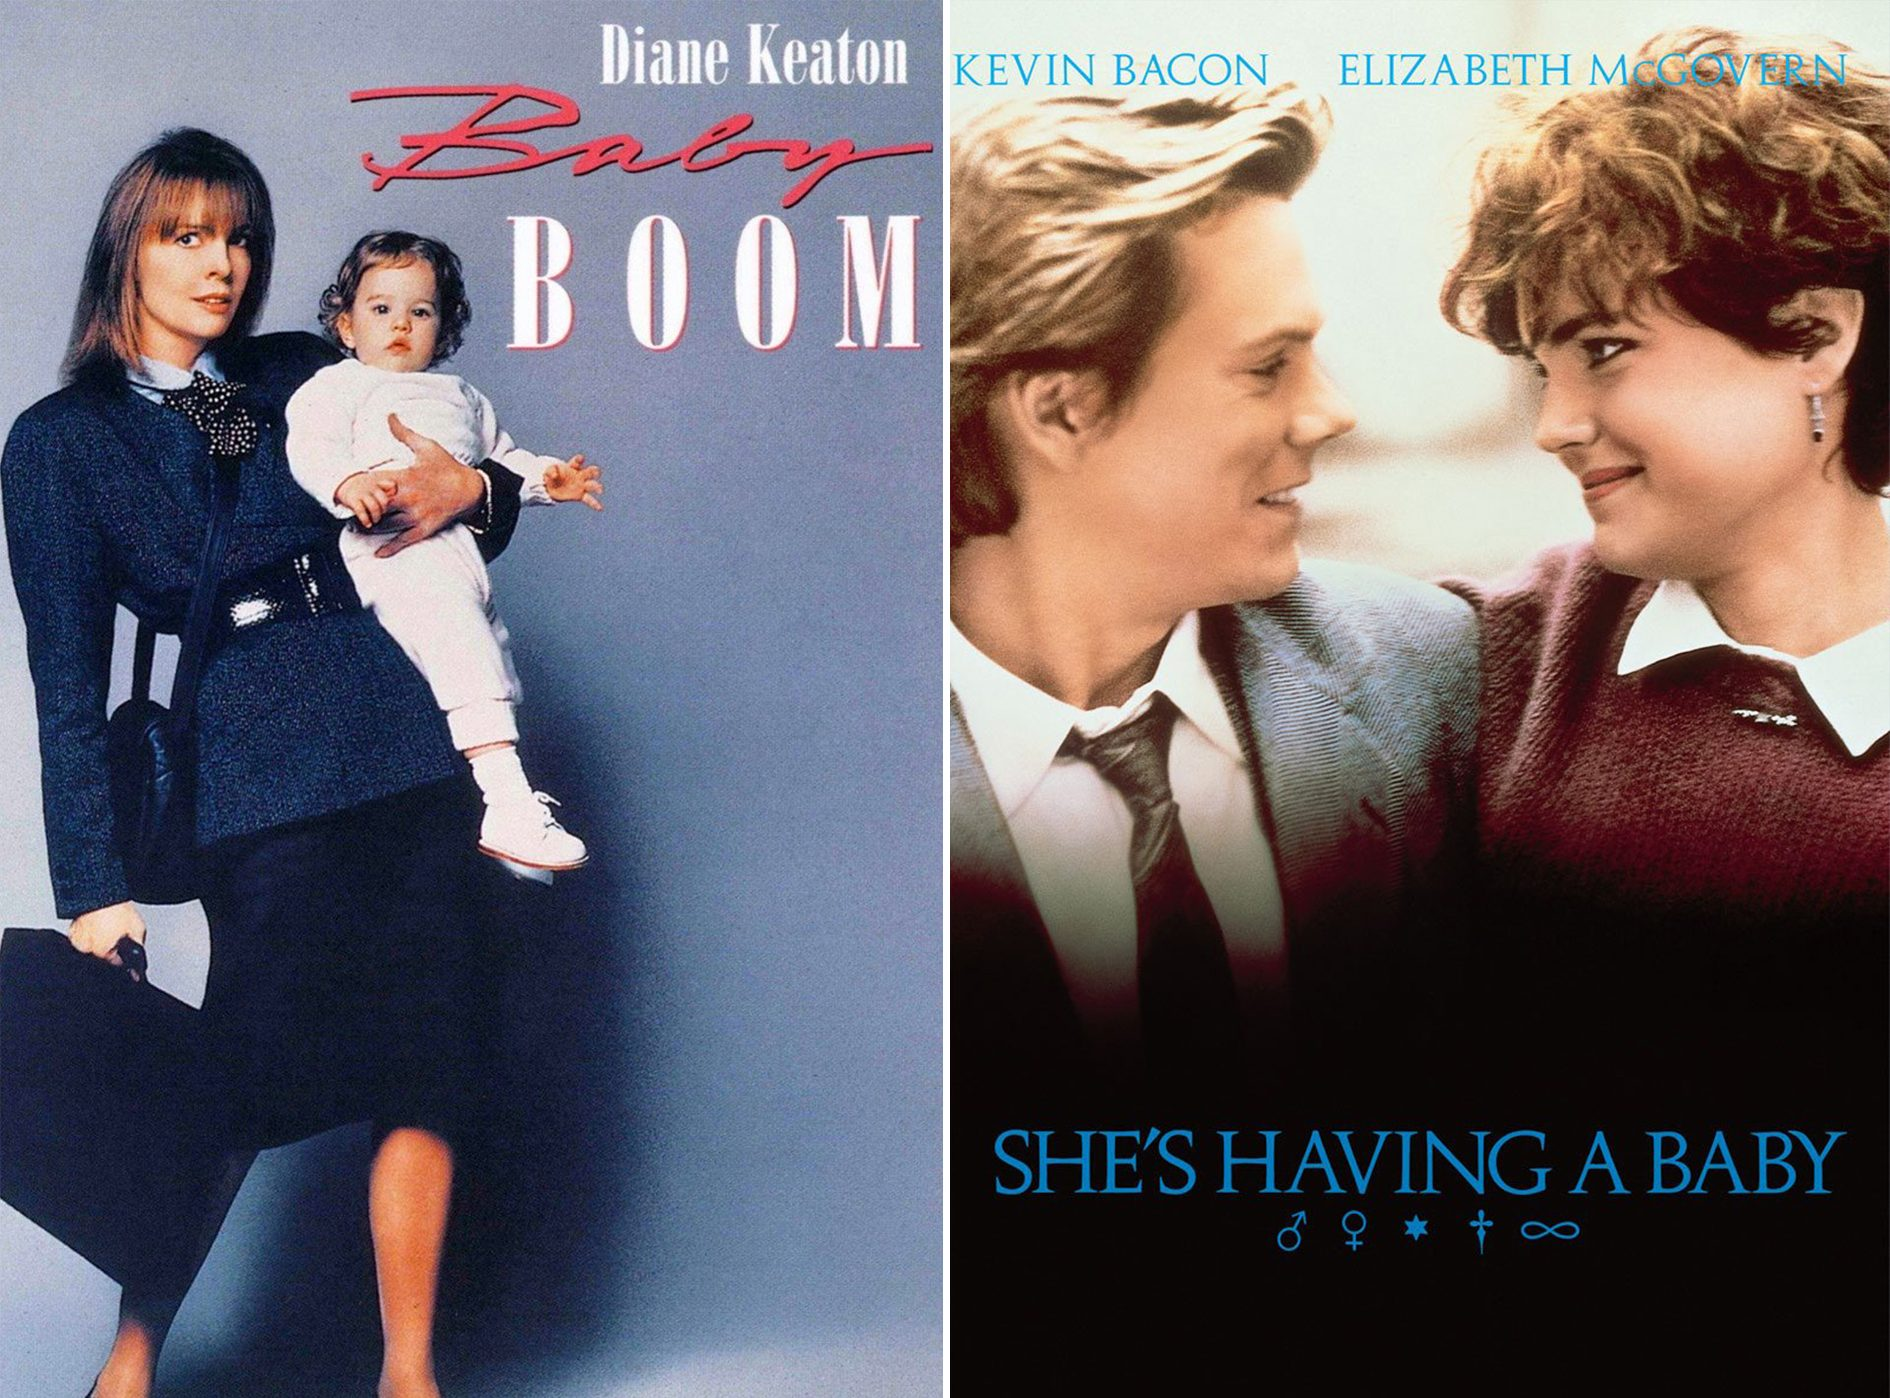 Baby movies e1629723957639 20 Things You Probably Didn't Know About Three Men And A Baby